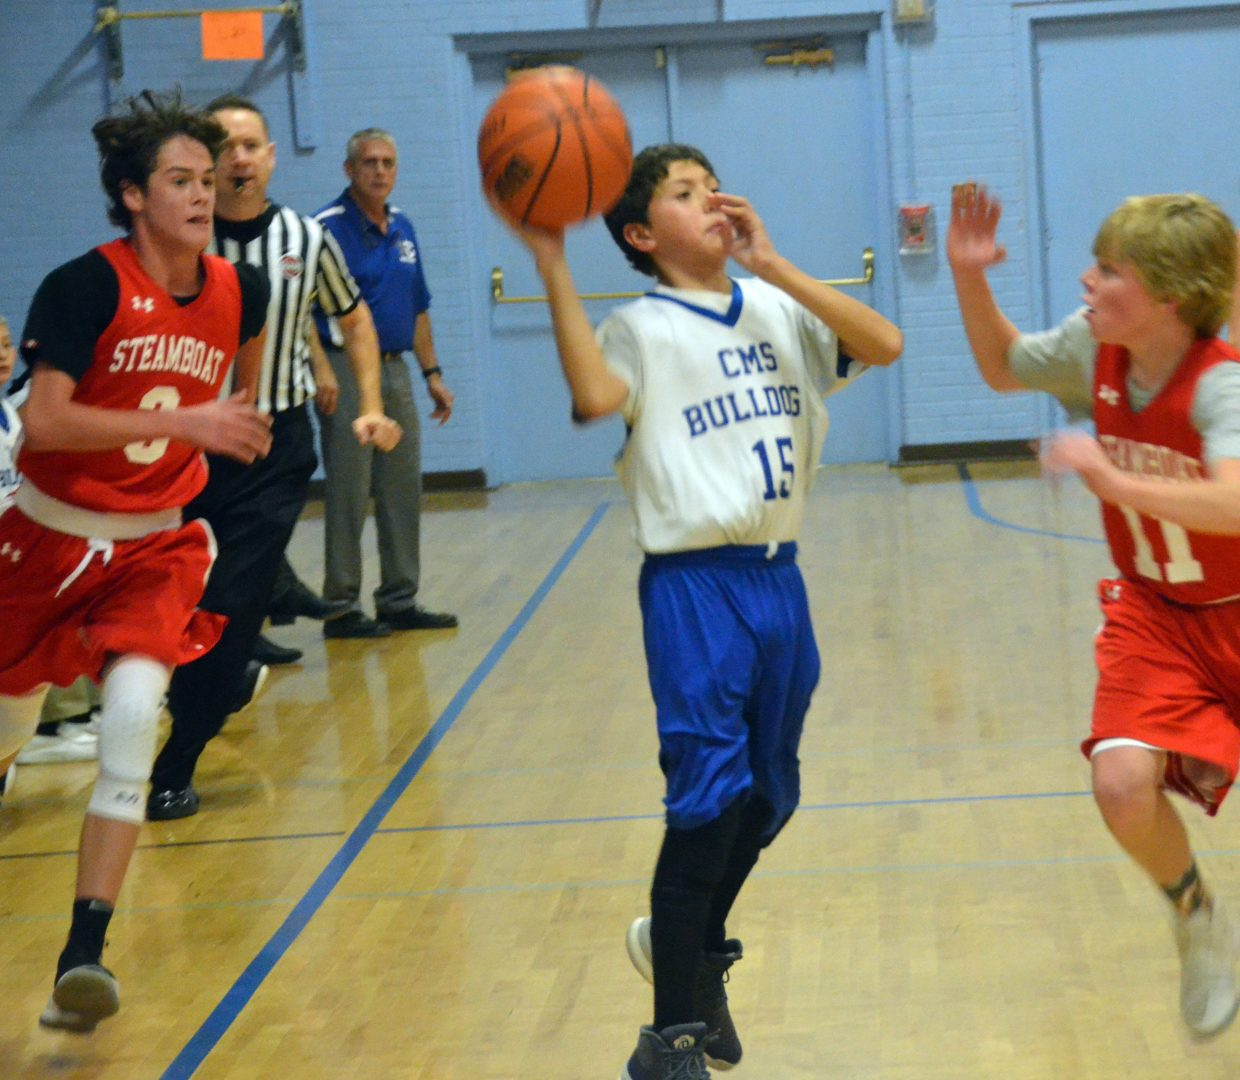 Craig Middle School's Marcus Pech launches a buzzer-beating three-pointer against Steamboat Springs.